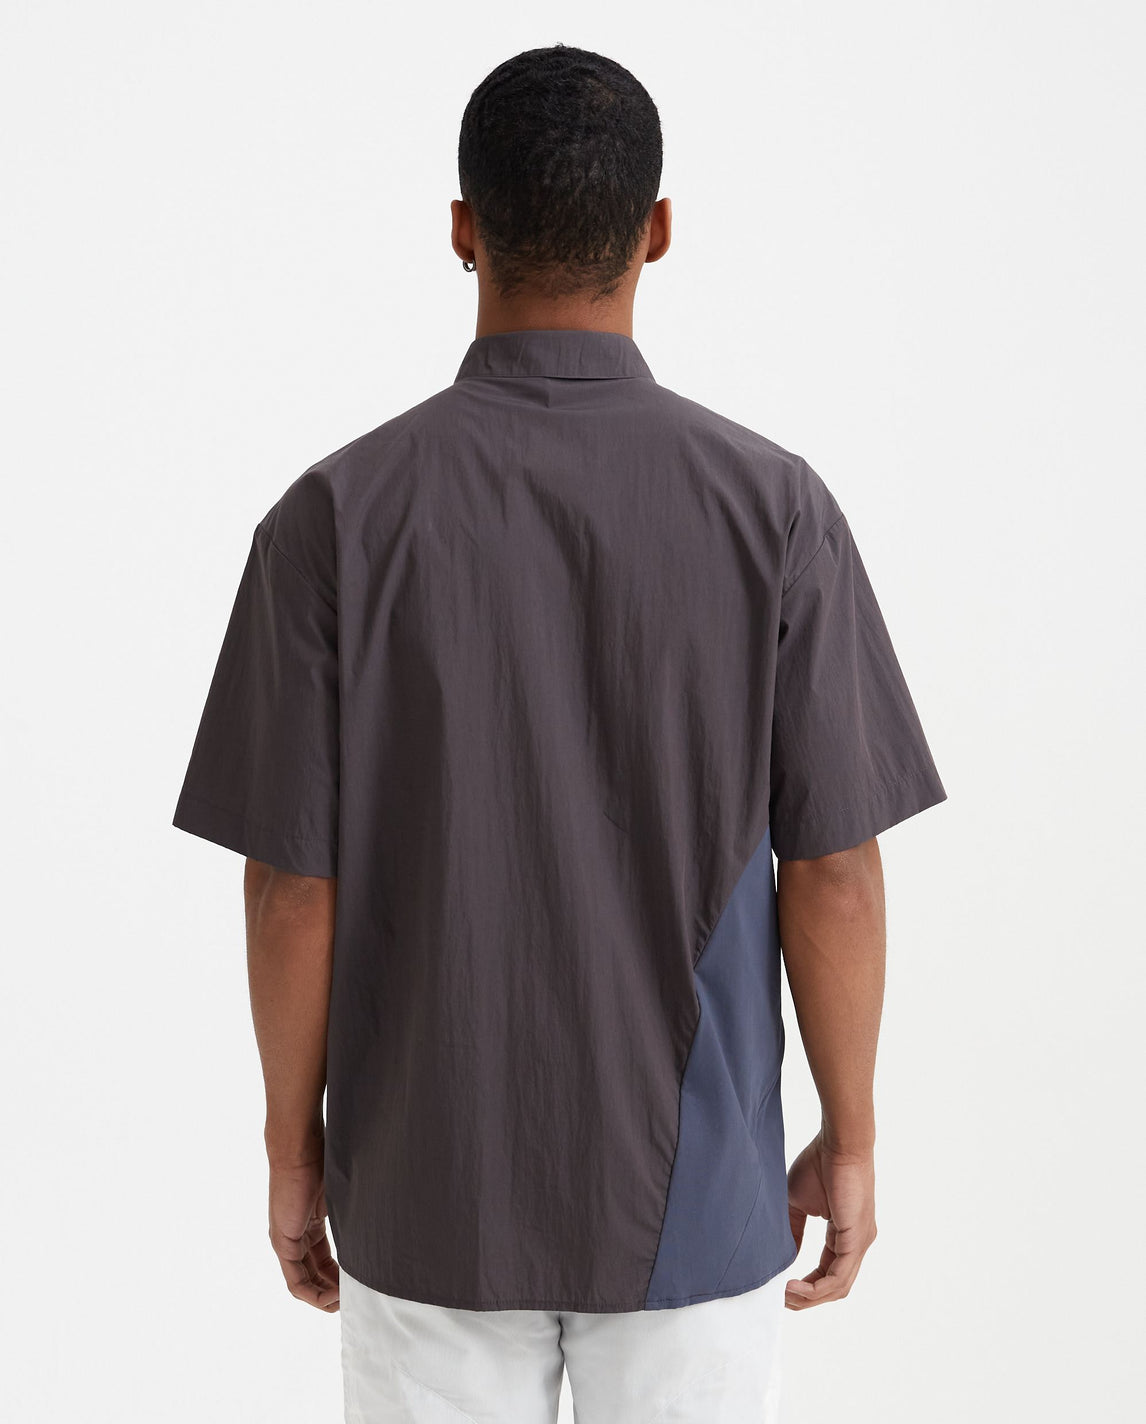 4.0 Shirt - Brown / Blue MENS POST ARCHIVE FACTION